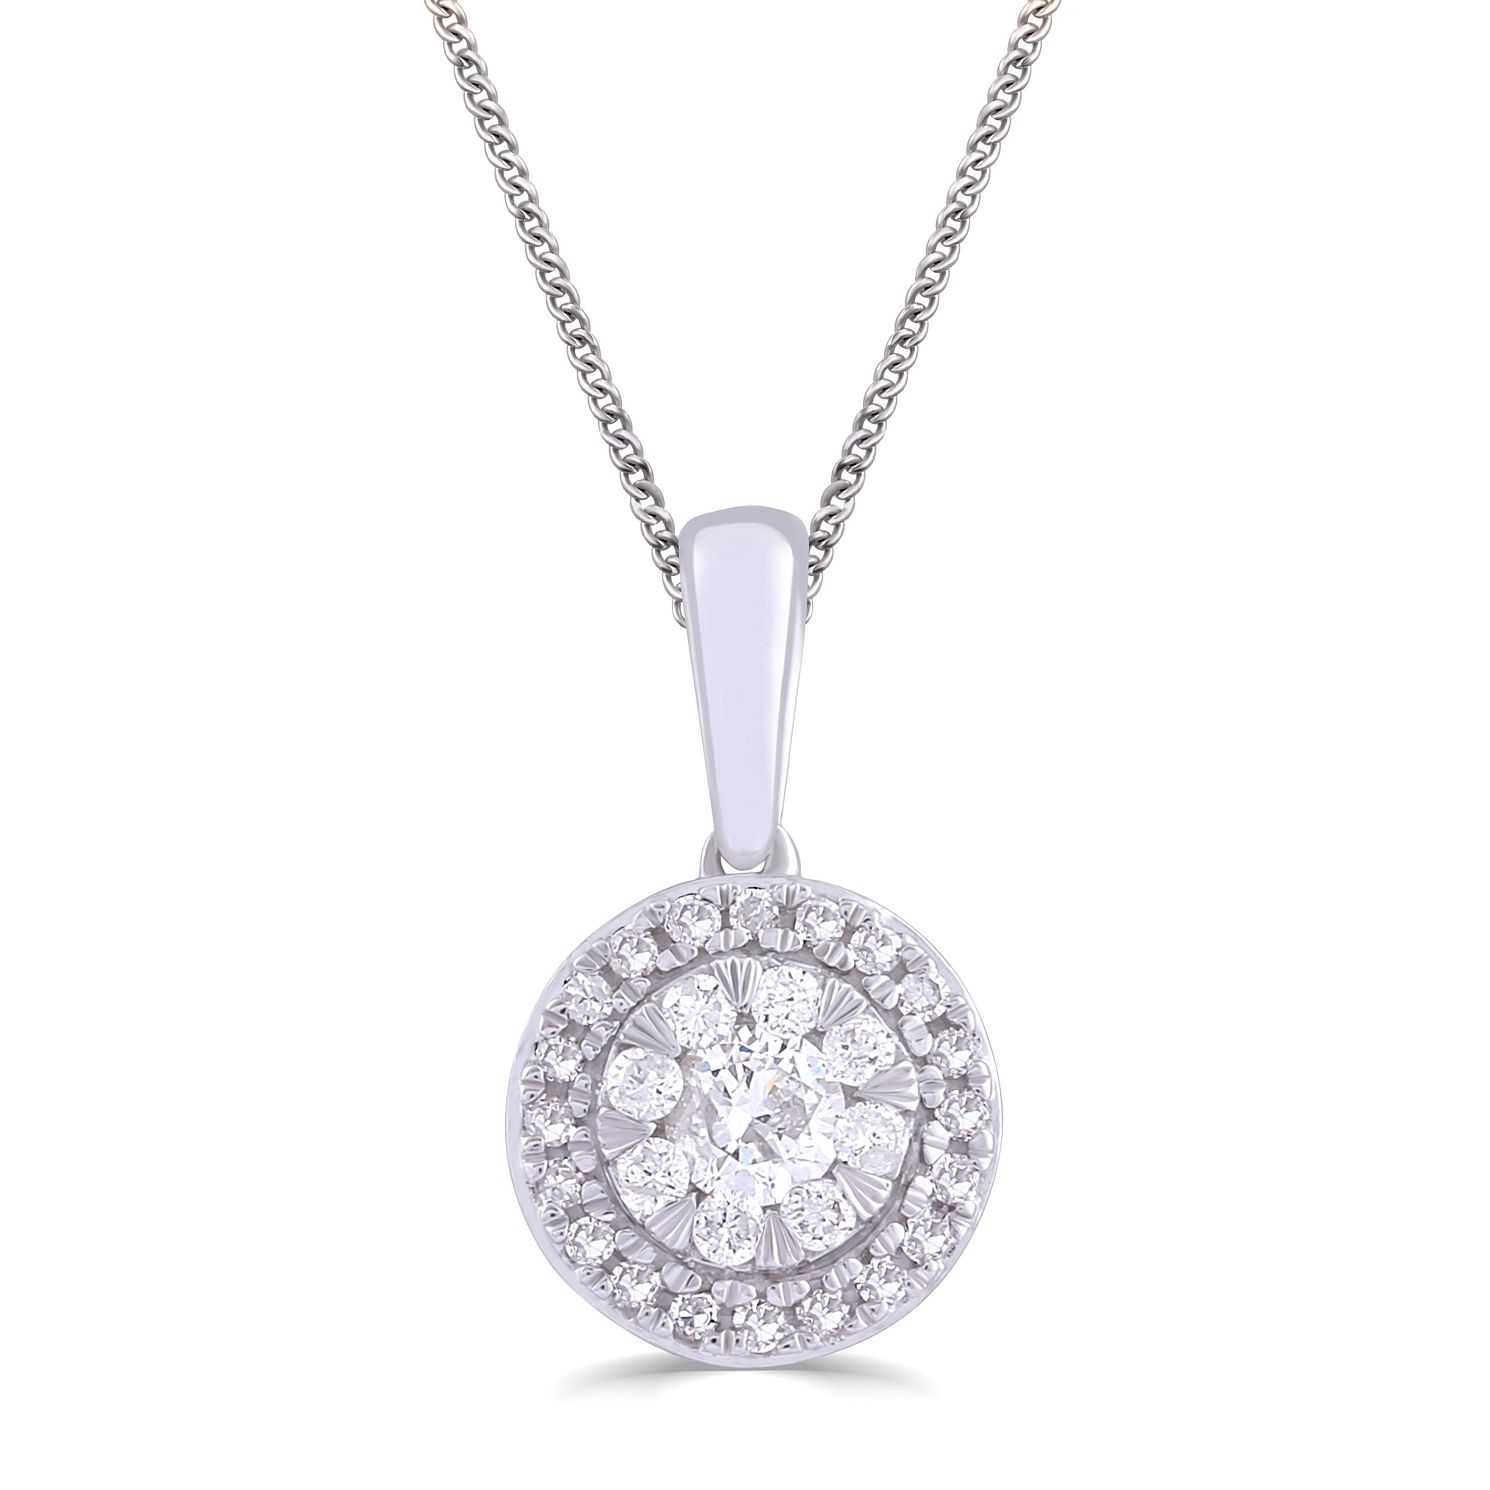 9ct White Gold & 1/5ct Round Diamond Pendant - Product number 5032989